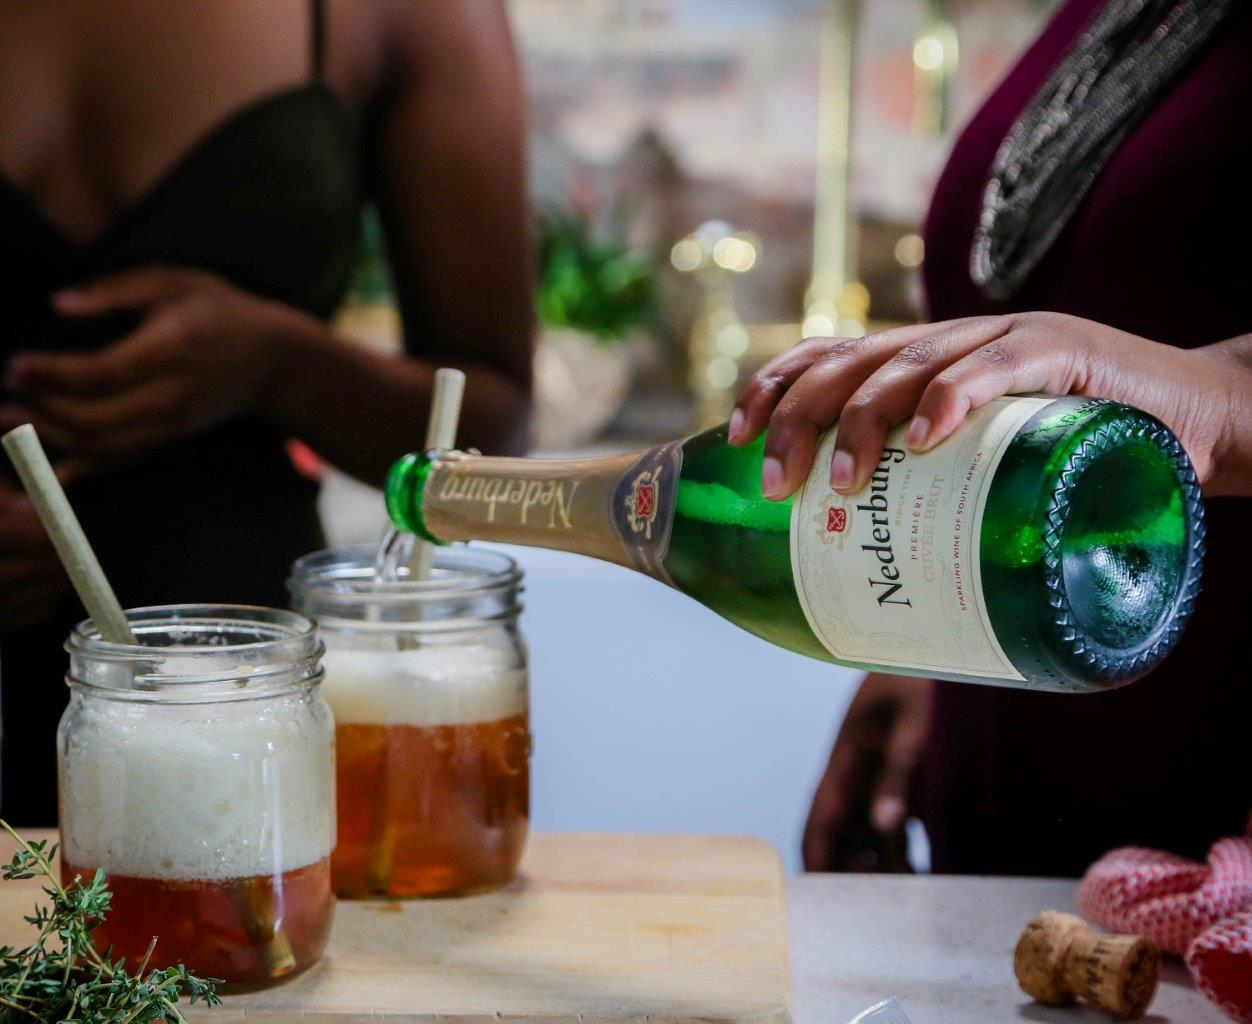 Ginger and Rooibos wine spritz with Nederburg Cuvee Brut LR Dig Into Deliciousness And Thrilling Stories With Nederburg And Zola Nene